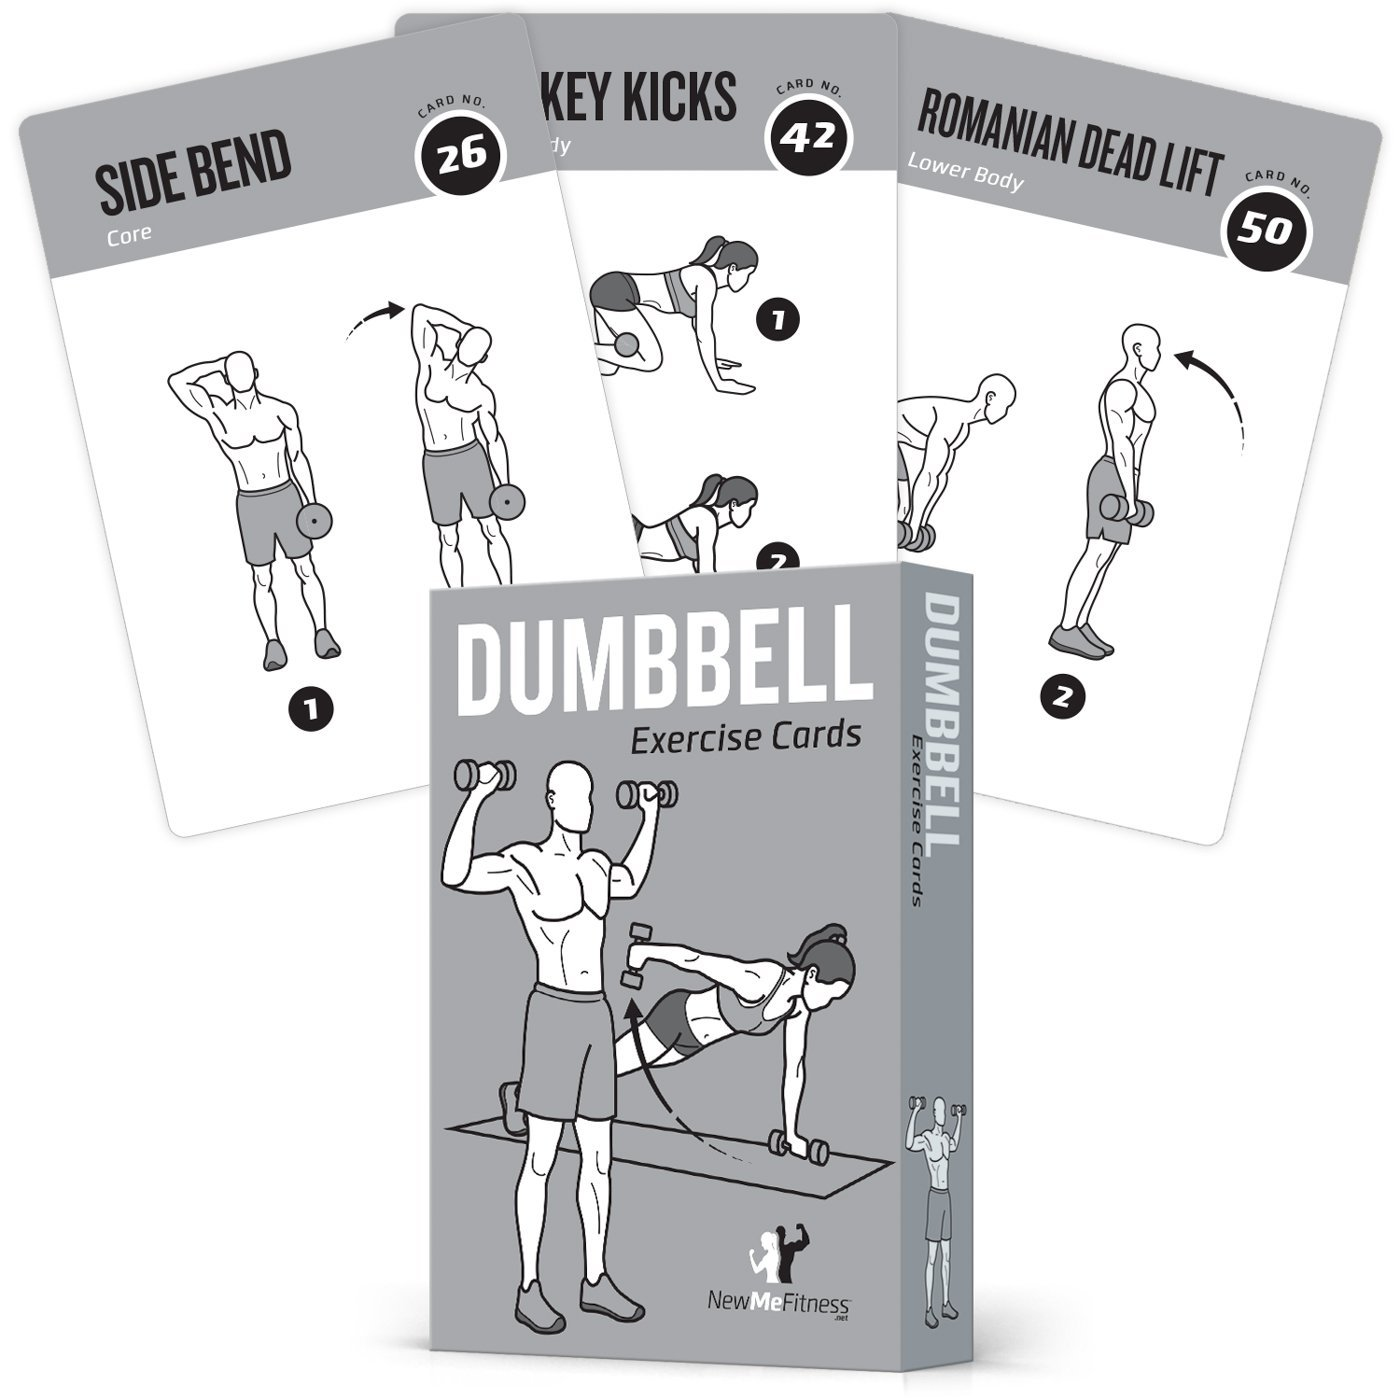 Get Quotations EXERCISE CARDS DUMBBELL Home Gym Workouts Strength Training Building Muscle Total Body Fitness Guide Workout Routines